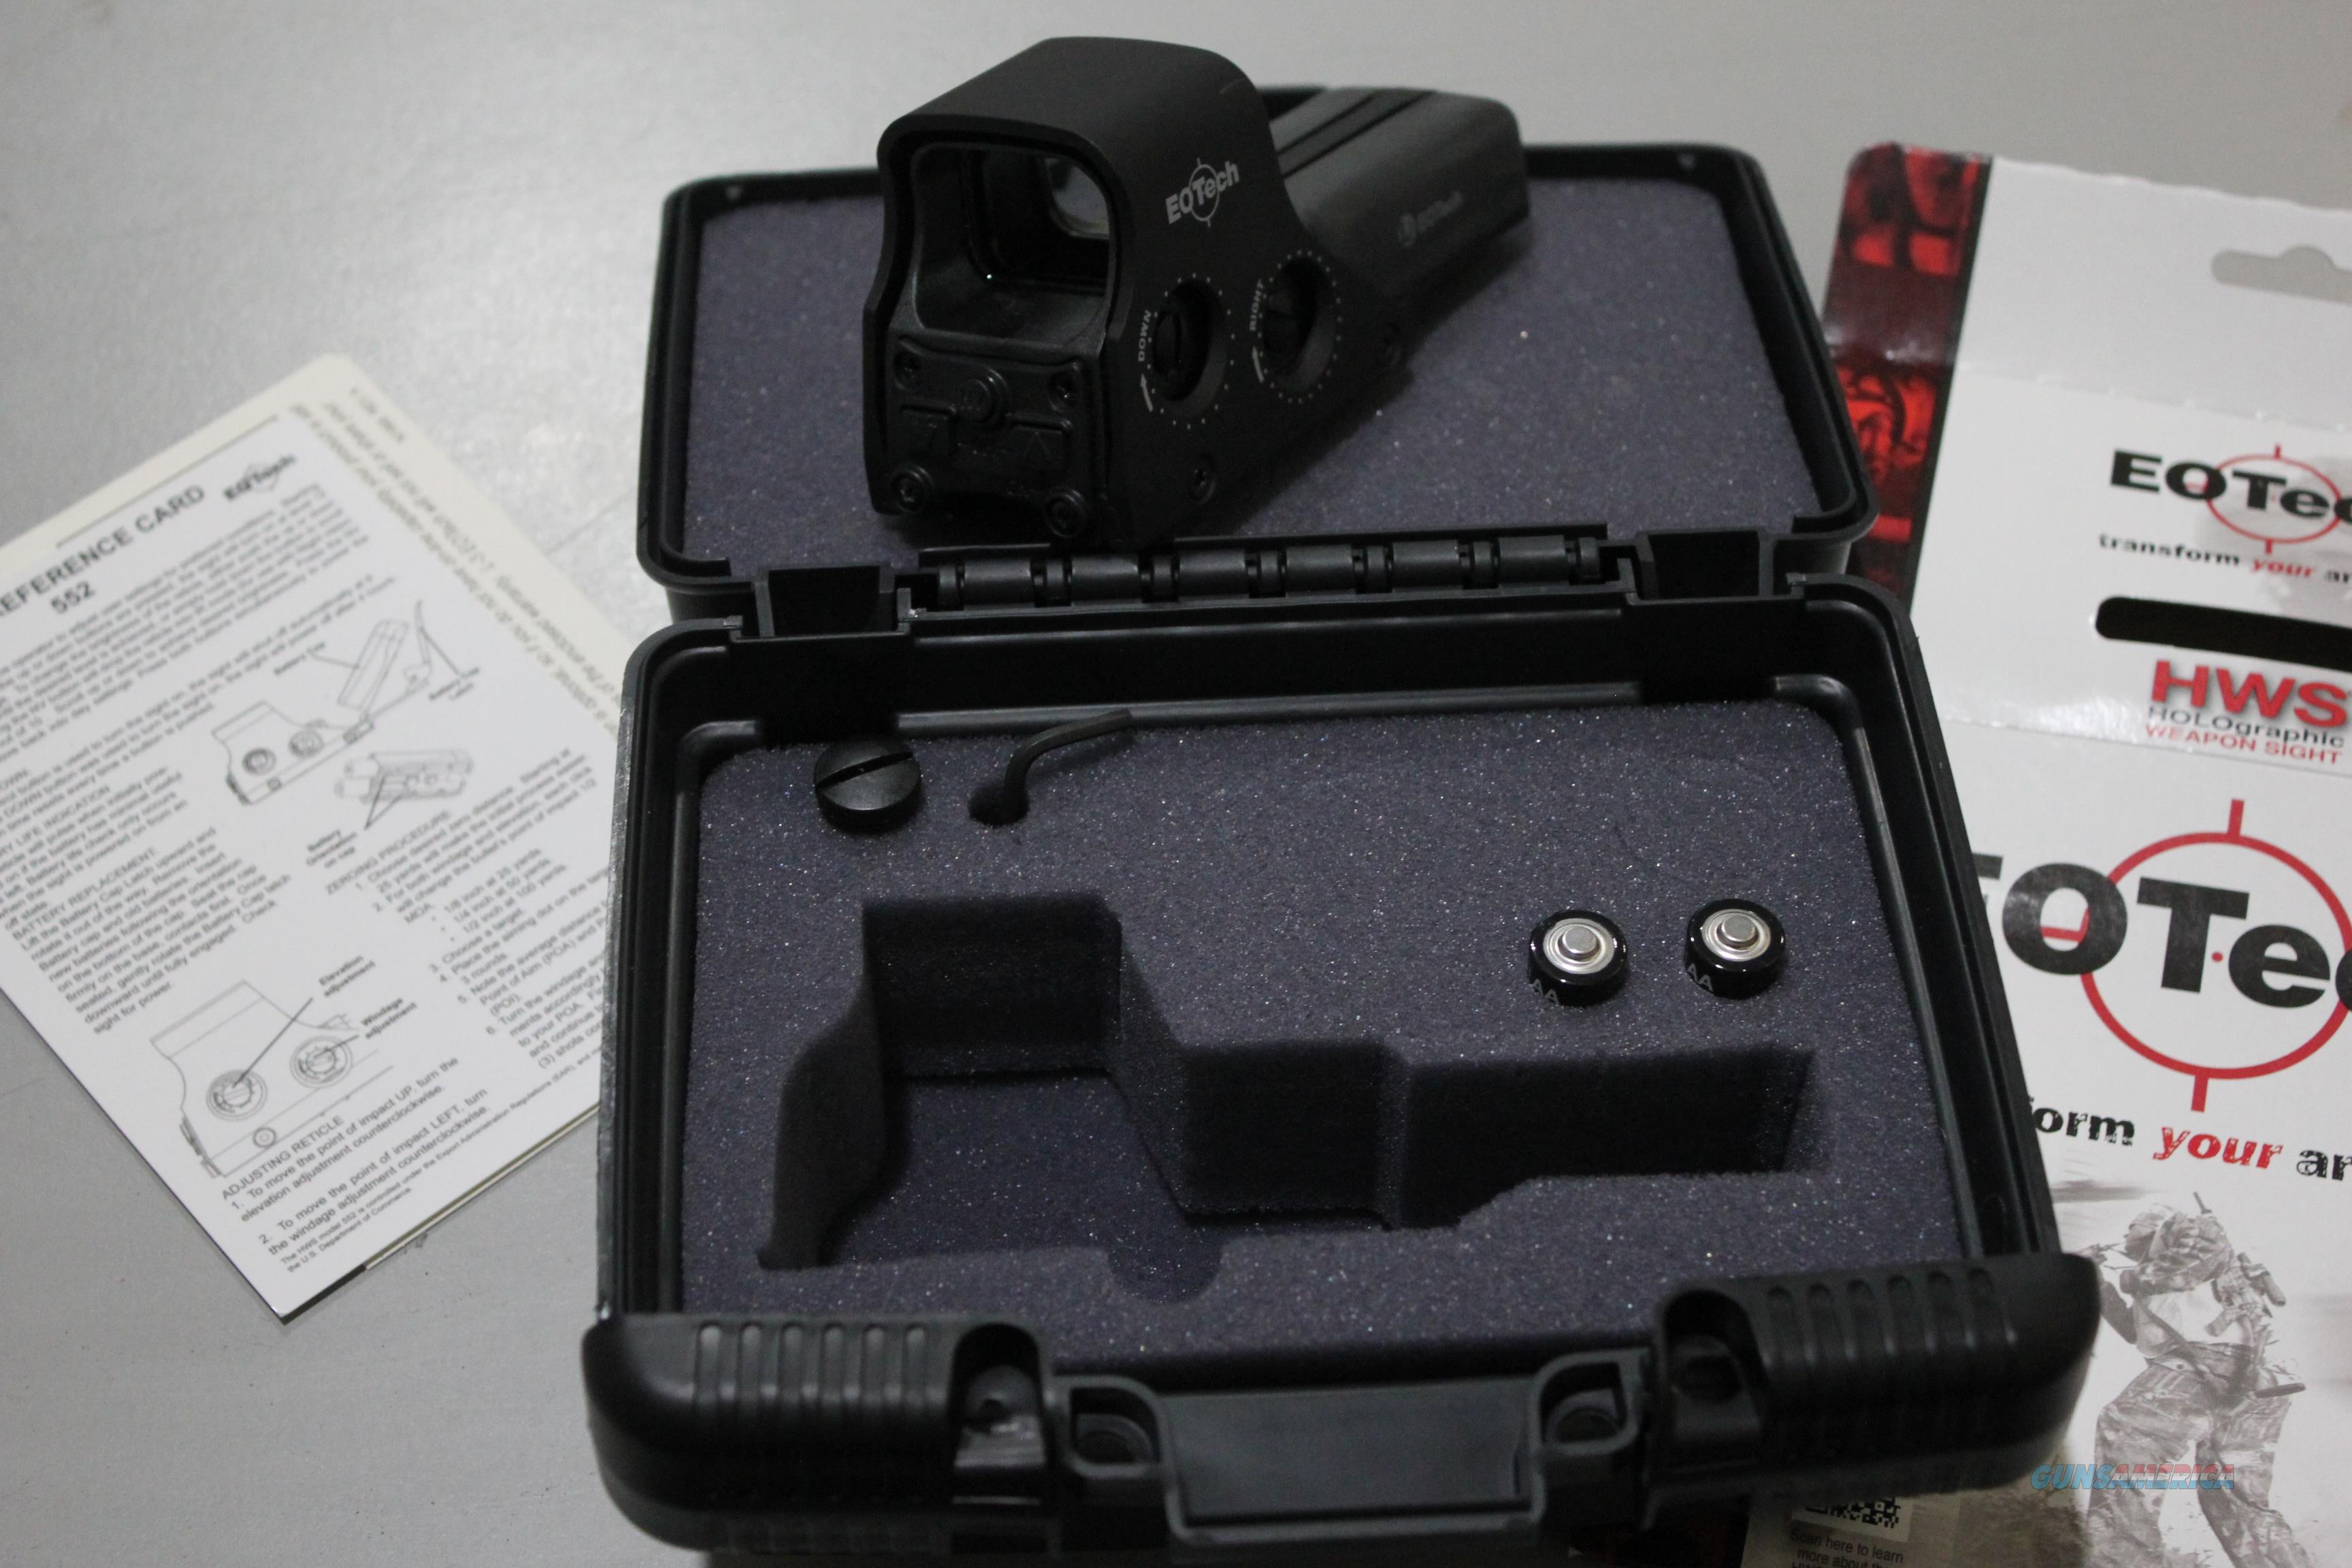 New EOTech Holographic sight model 552A with FREE Freight  Non-Guns > Scopes/Mounts/Rings & Optics > Tactical Scopes > Other Head-Up Optics